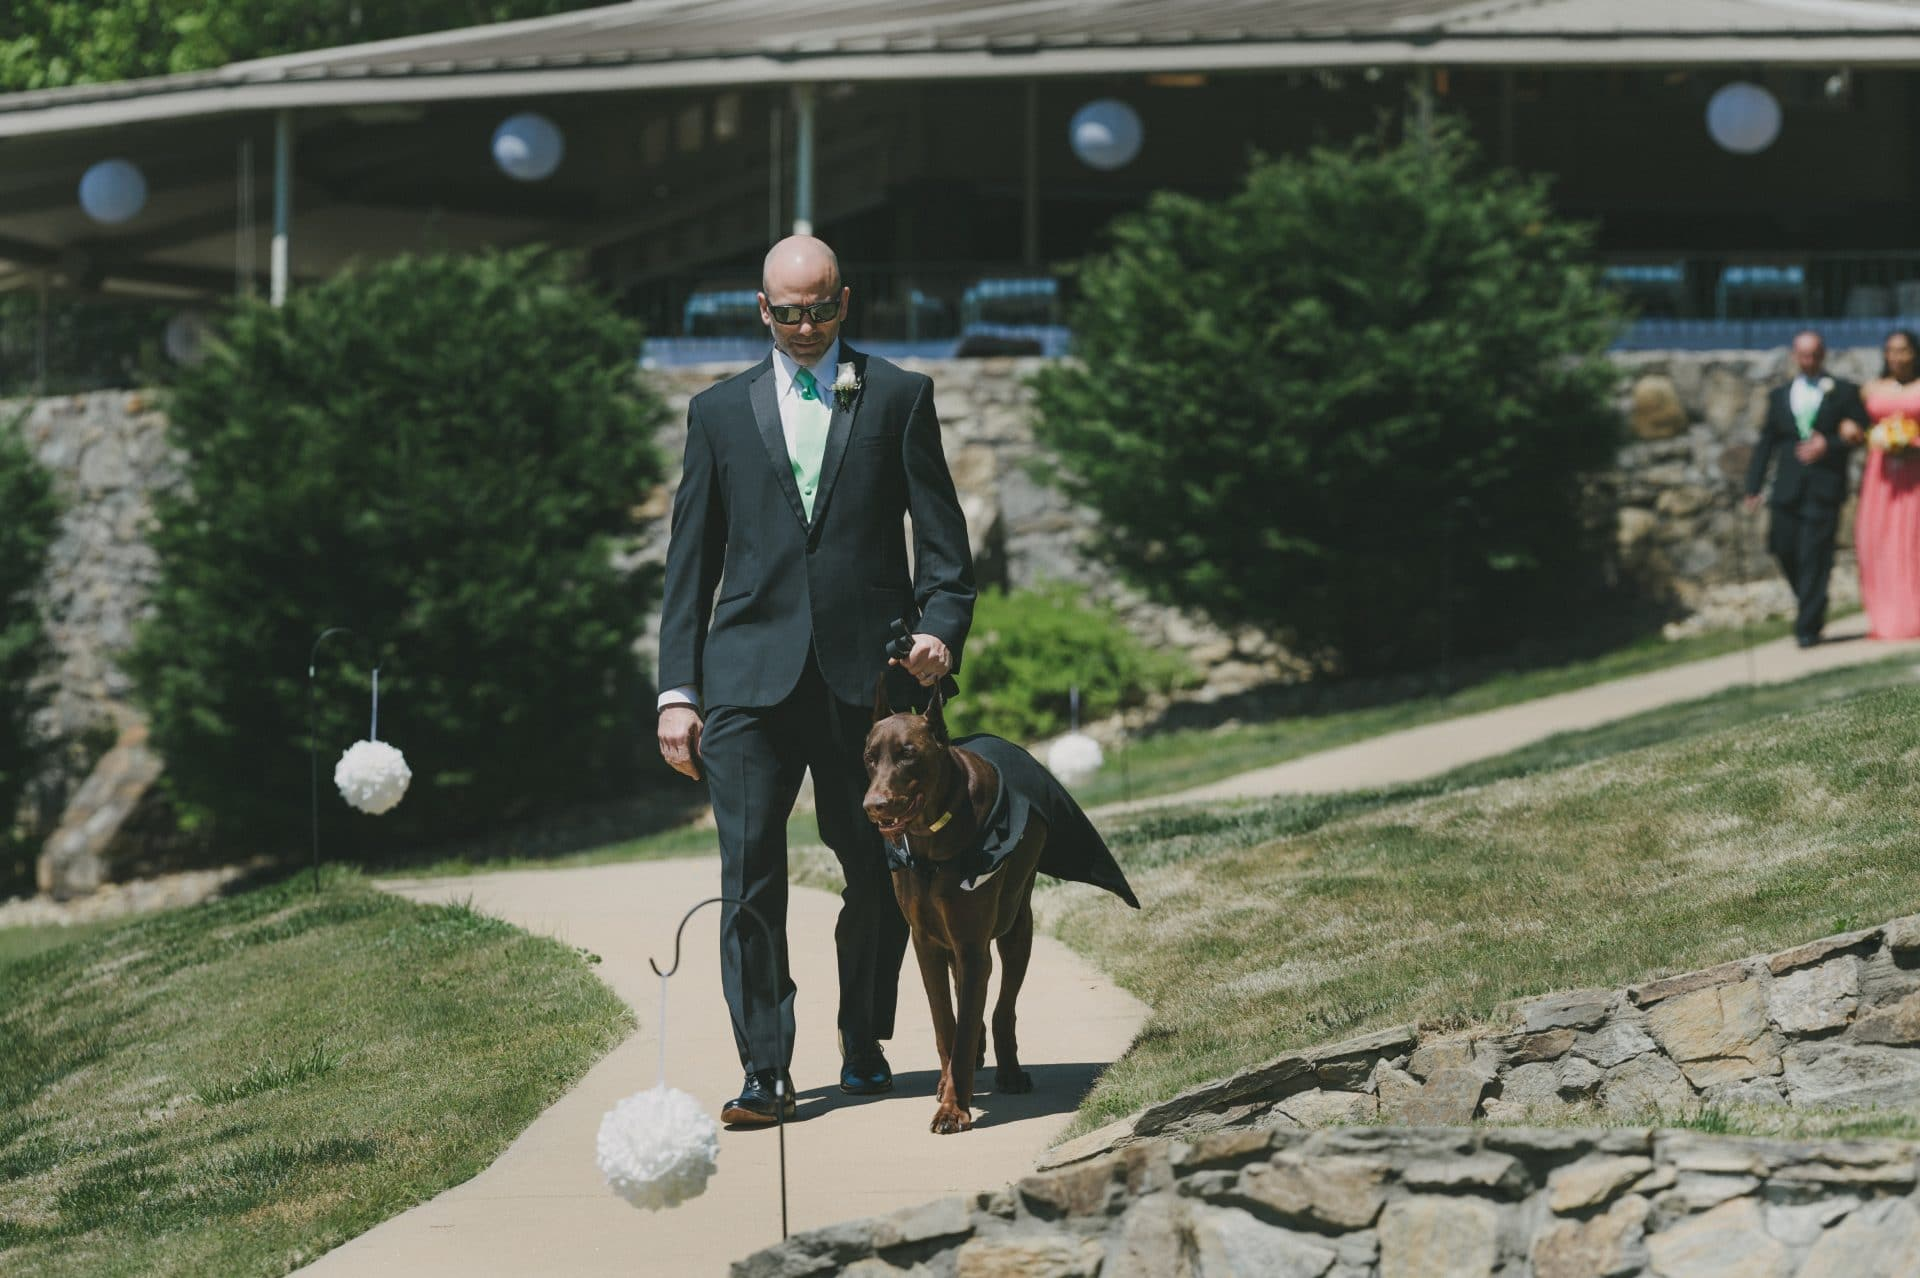 Rumbing Bald Resort - Nuptuals - Ceremony - Dog